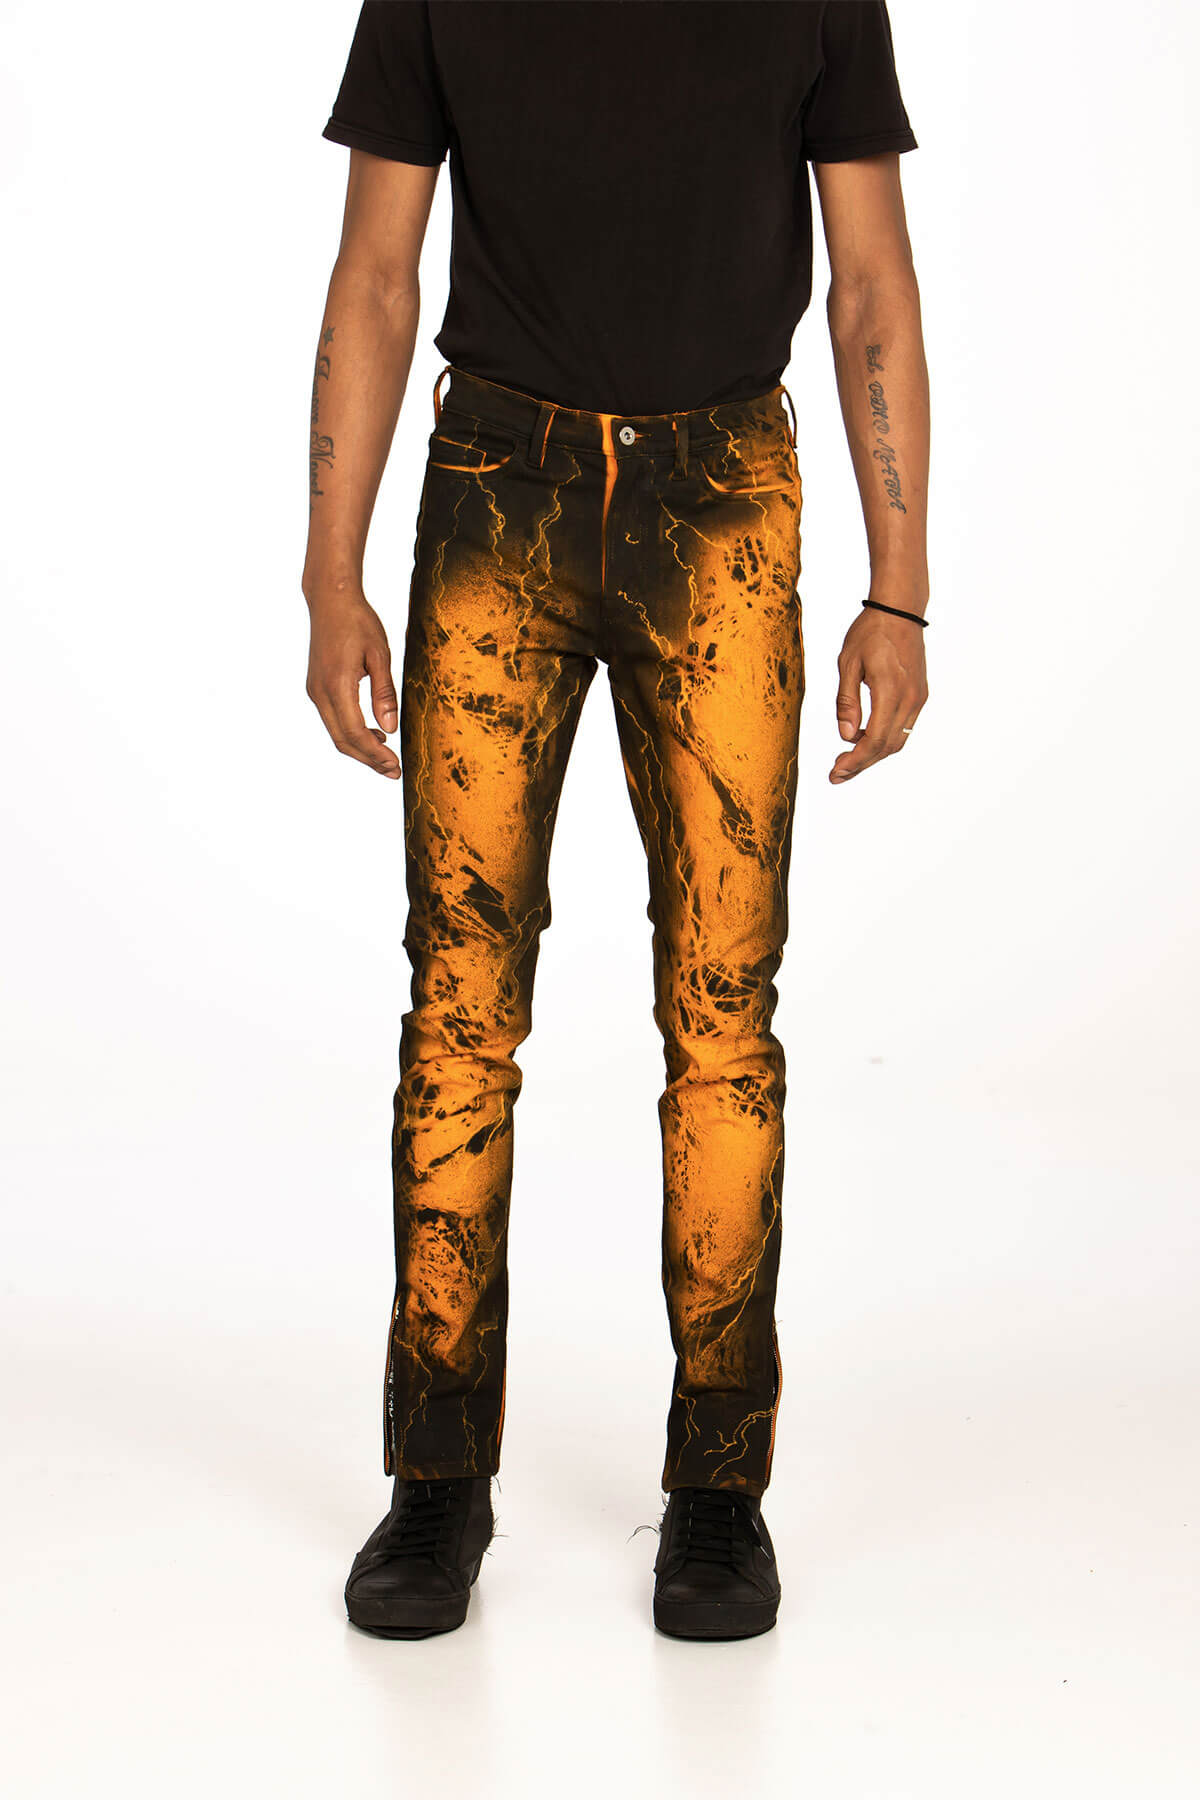 HAND SPRAYED/ CRAFTED ORANGE CRIXUS JEANS - BOTTOMS - MJB